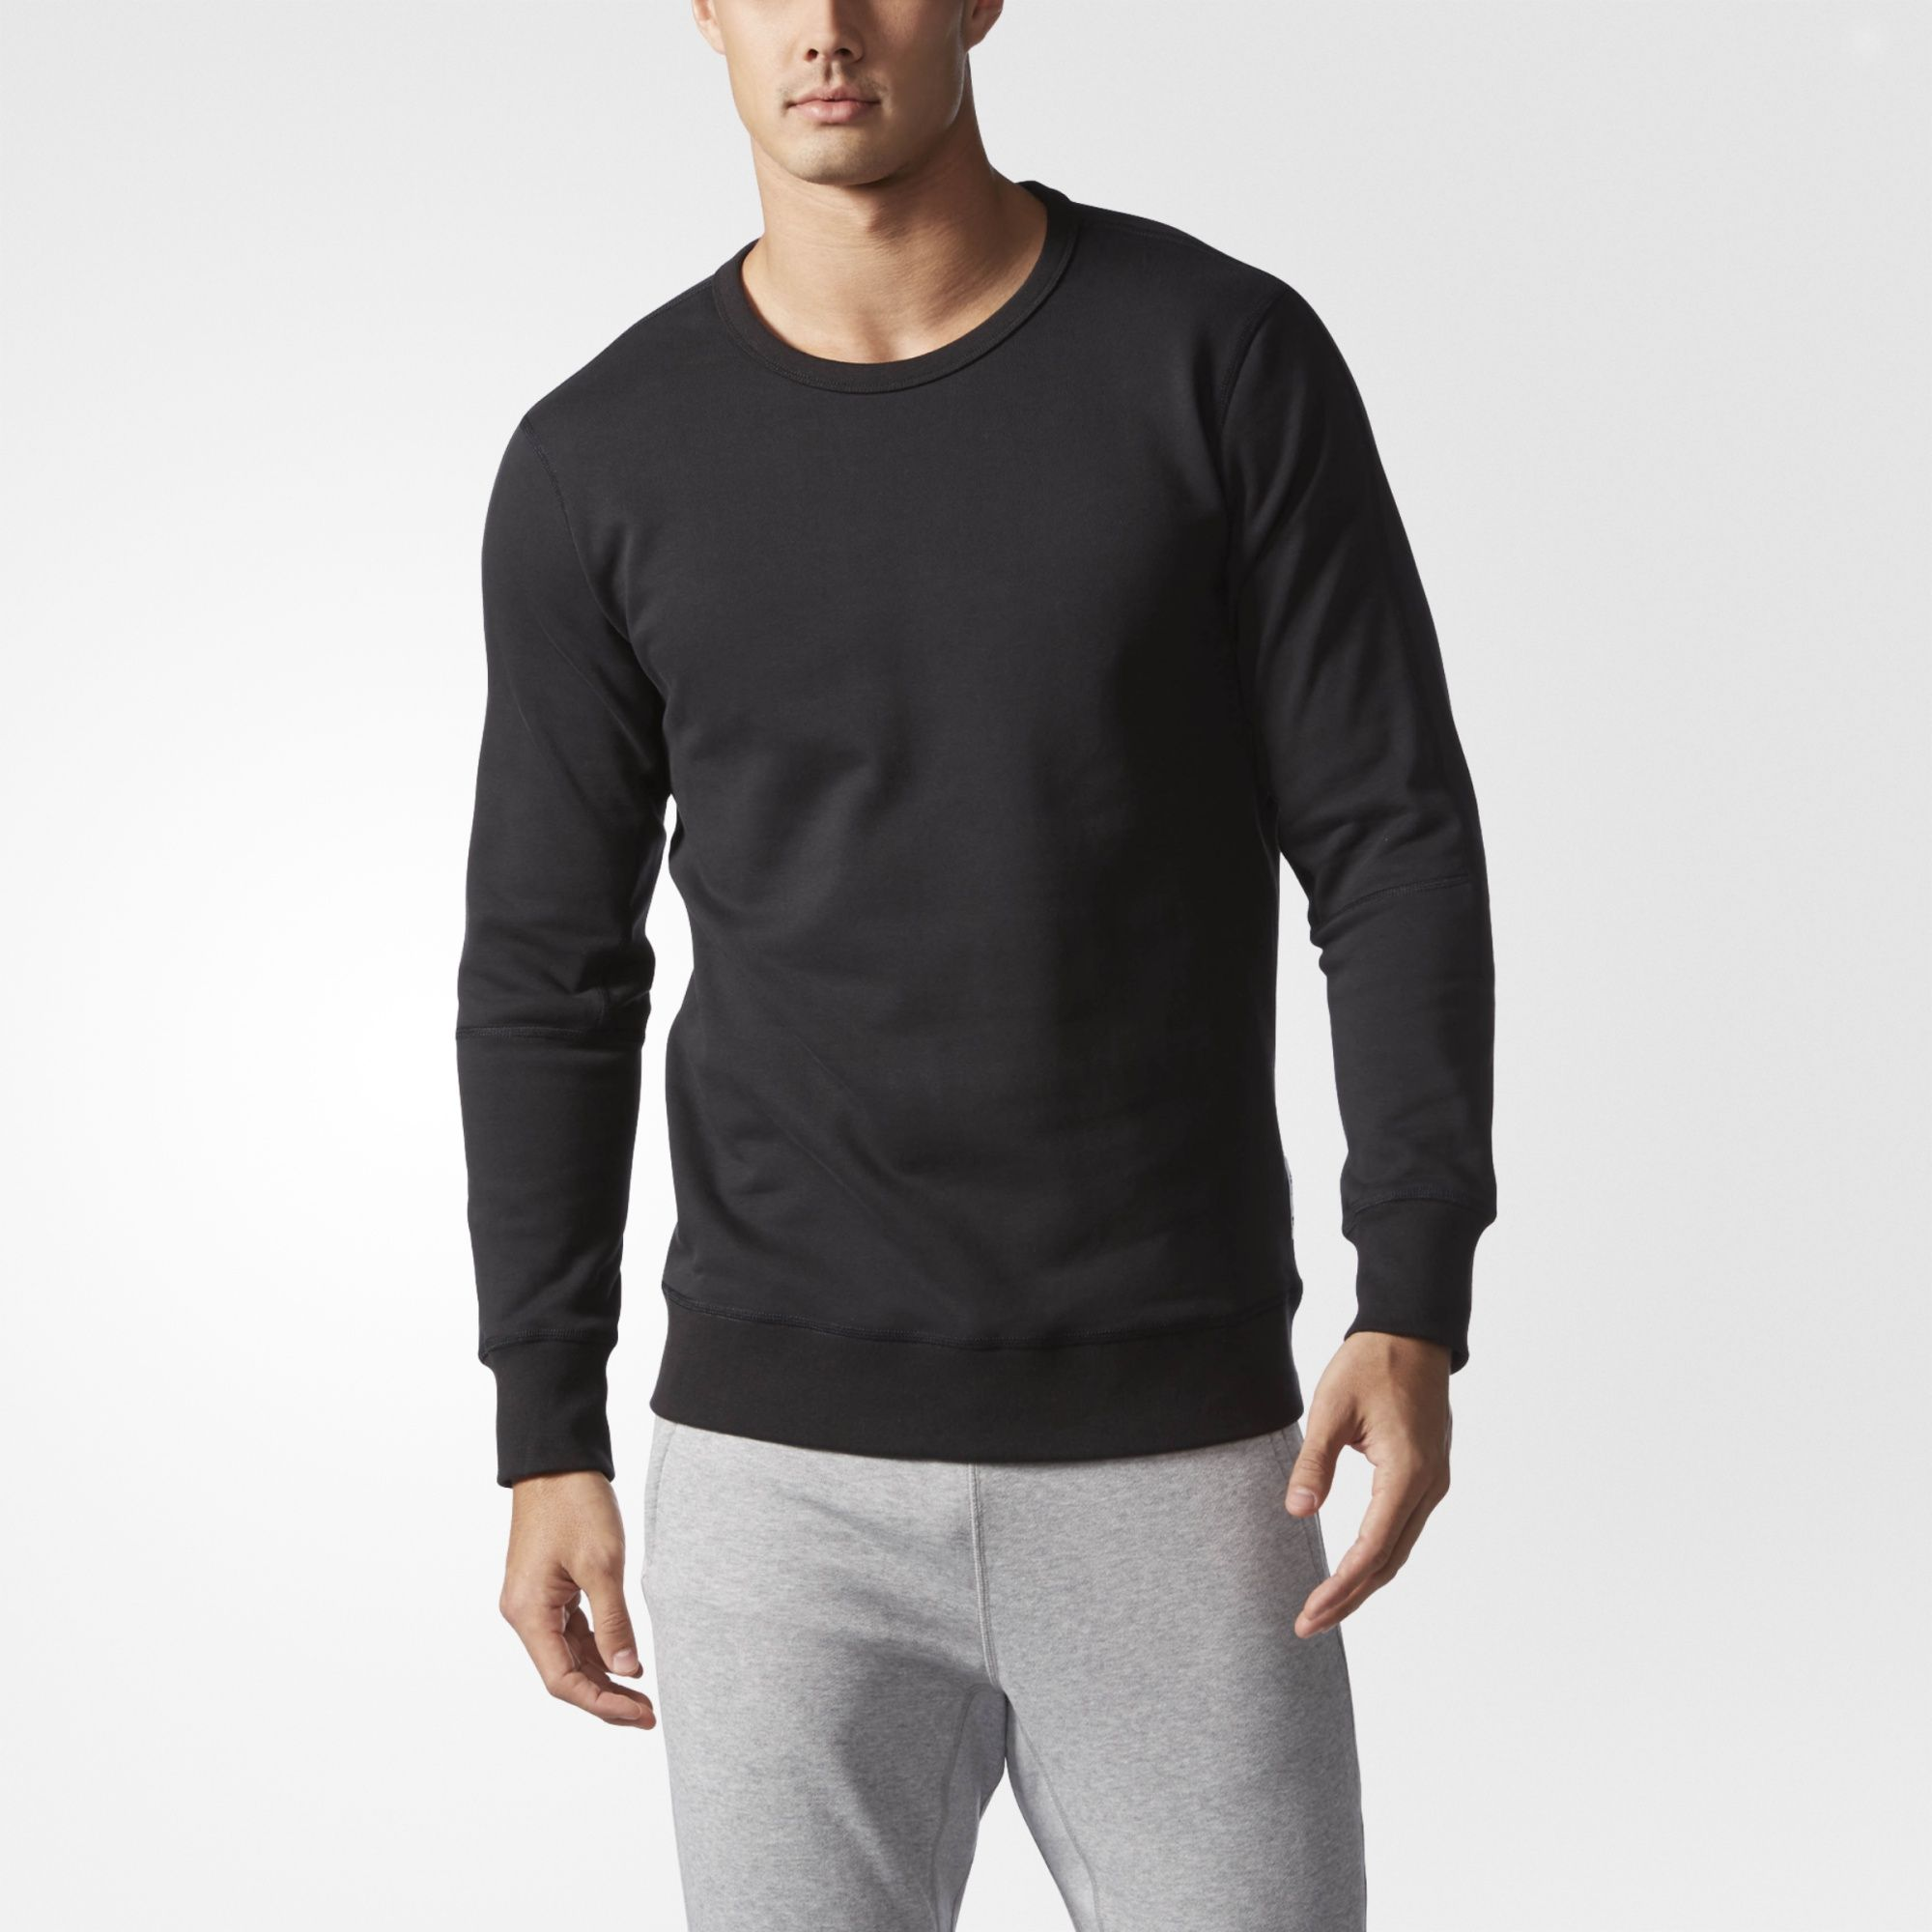 A Cozy Top Layer For Chilly Days This Men S Sweatshirt Features Ribbed Cuffs And Hem For A Snug Fit Mens Sweatshirts Hoodie Long Sleeve Tshirt Men Hoodies Men [ 2000 x 2000 Pixel ]